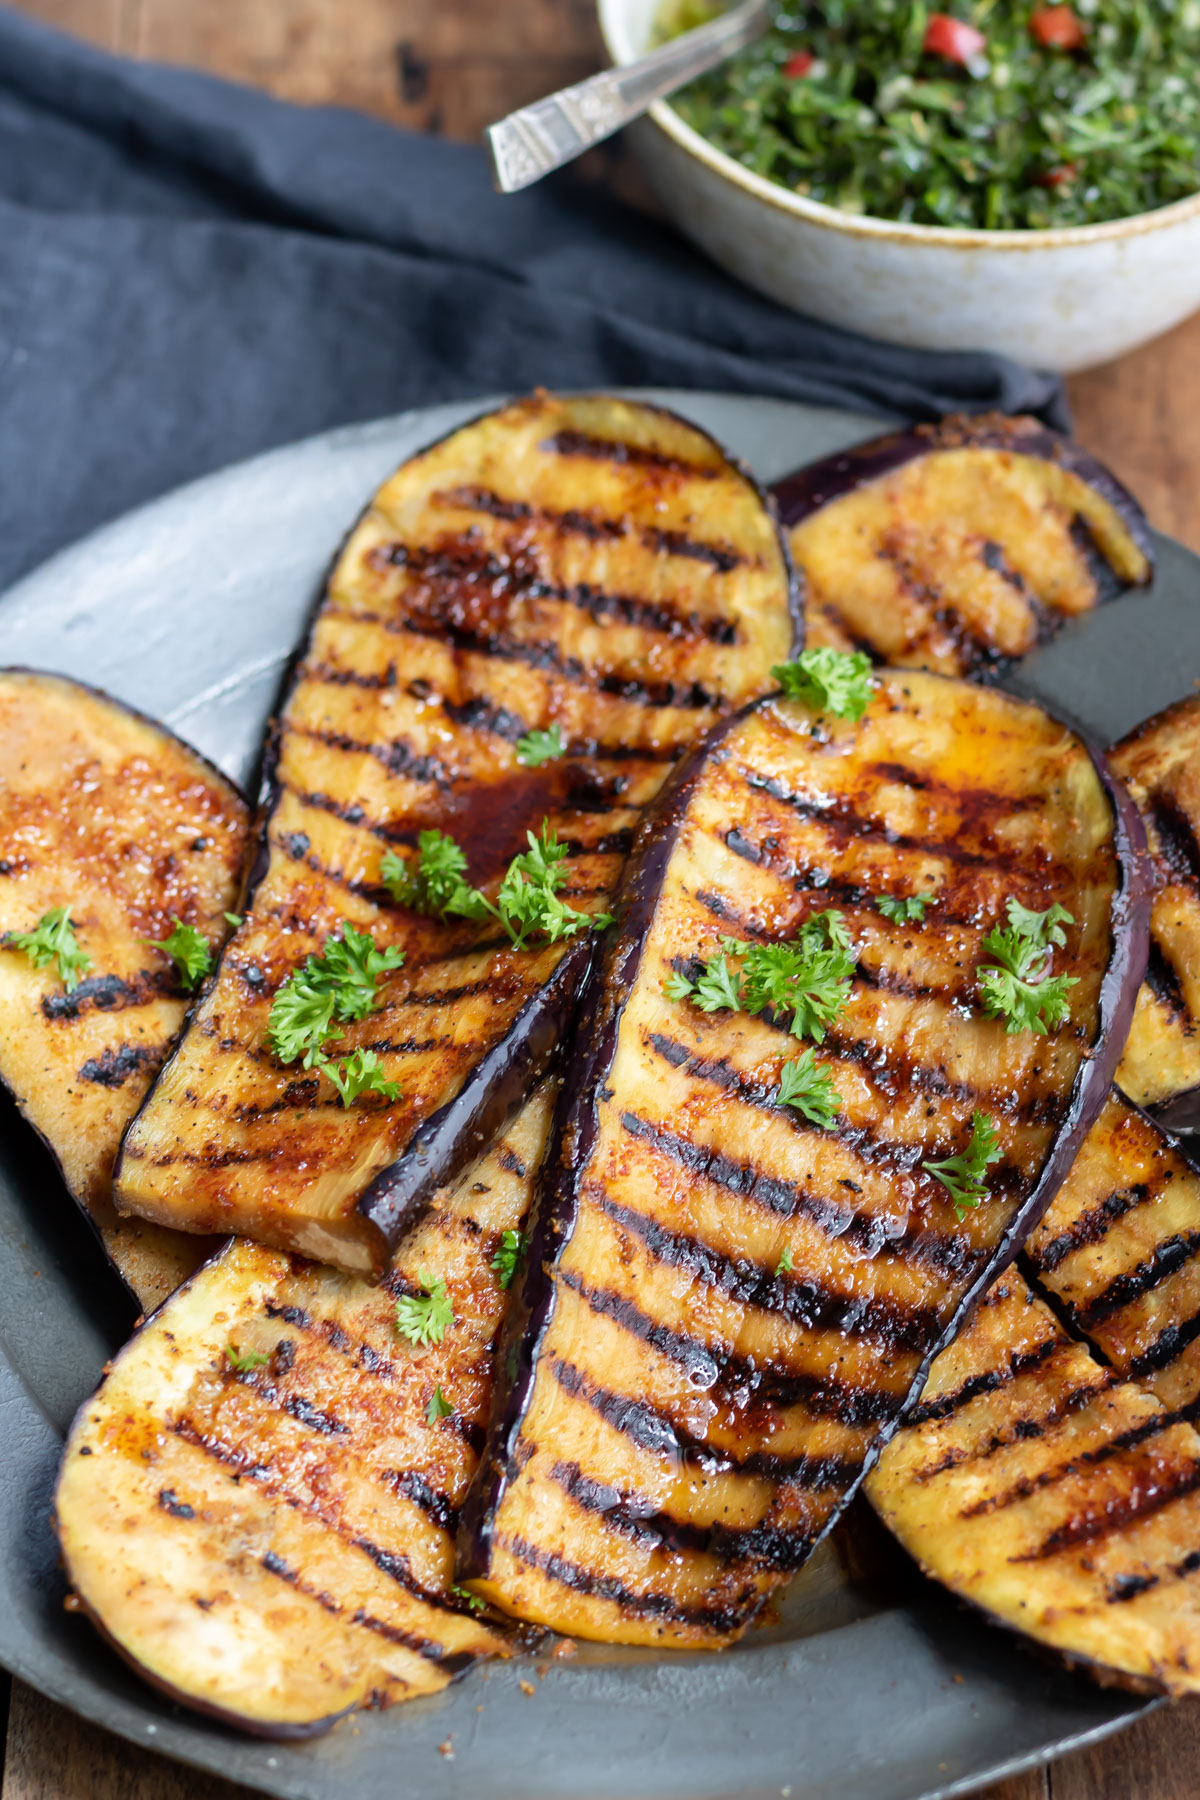 Close up of grilled eggplant.